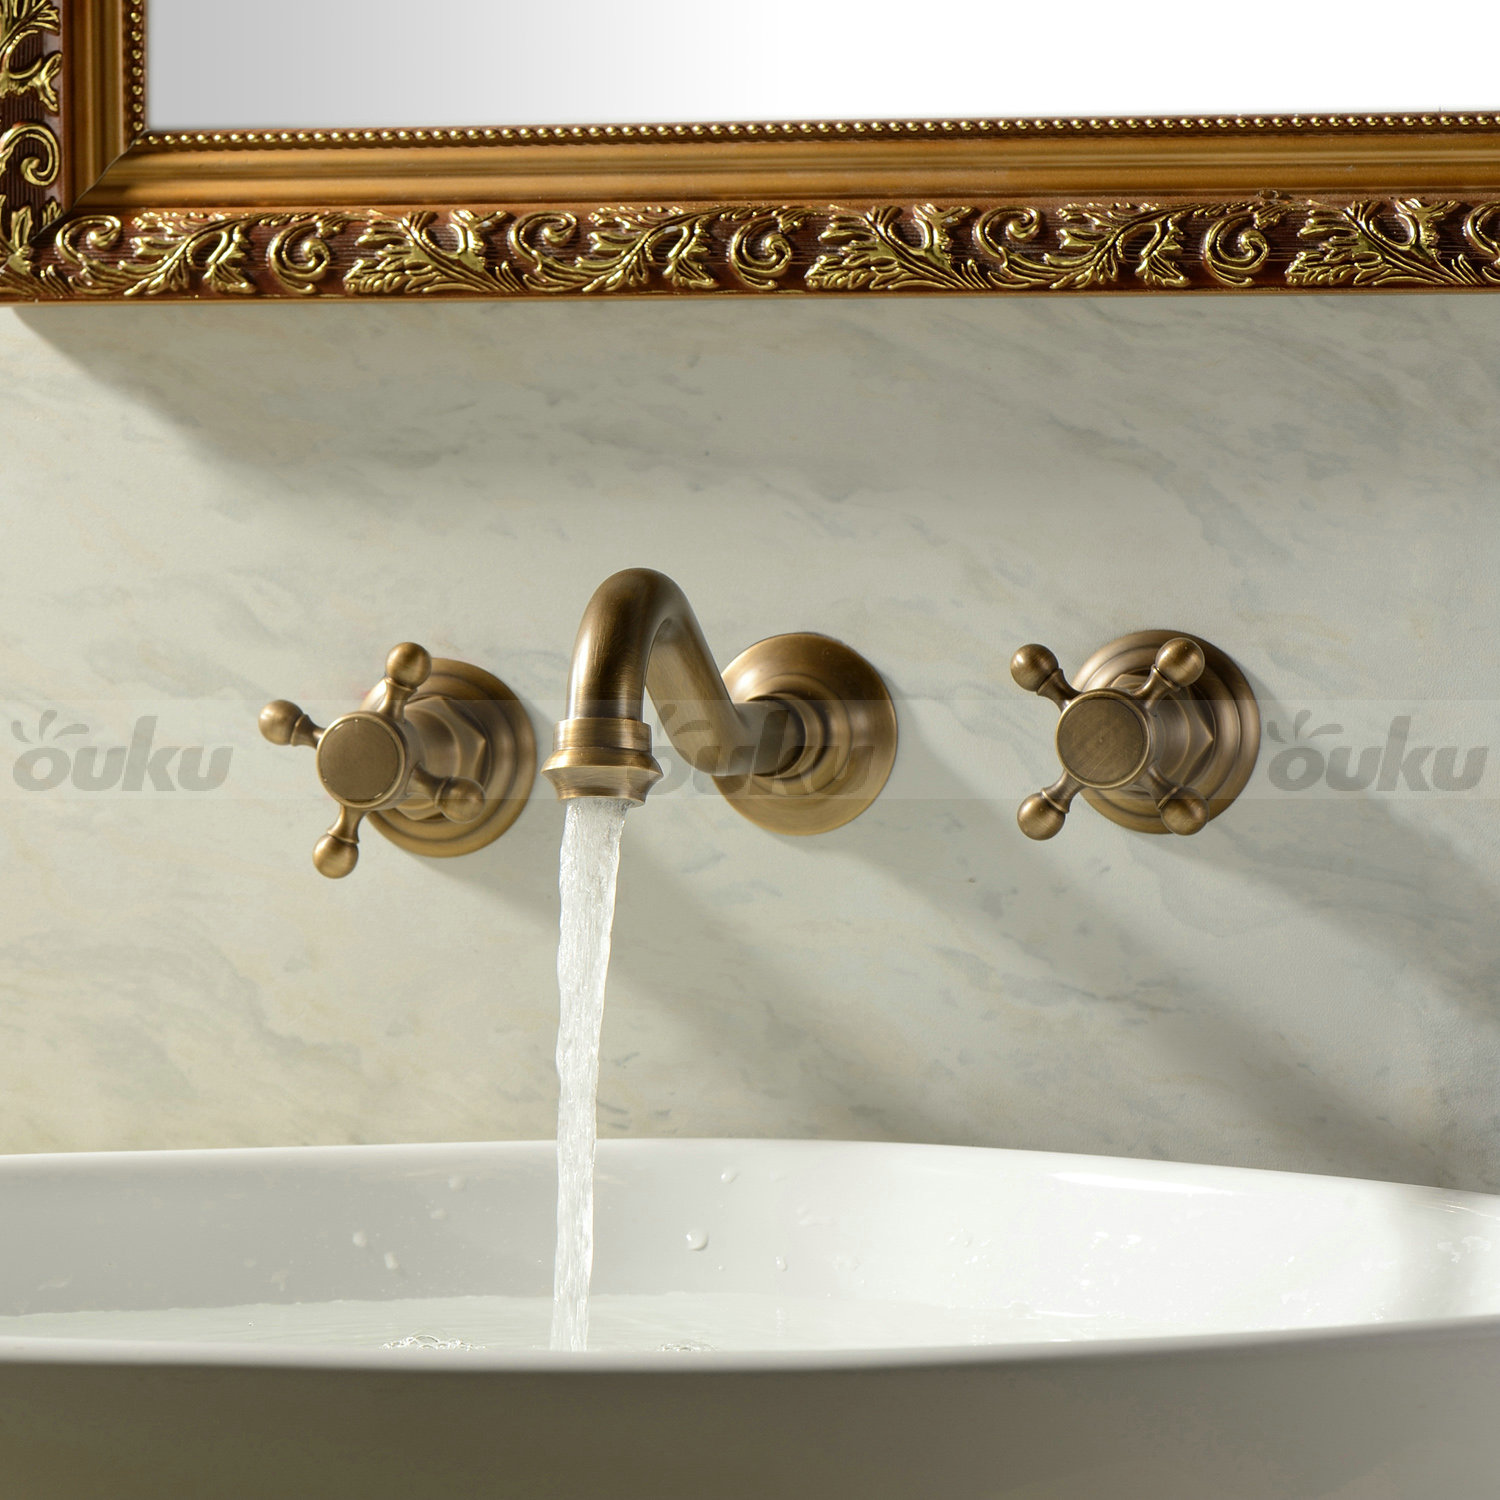 Wall mounted two handles three holes antique brass bathroom sink faucet cold hot ebay Antique brass faucet bathroom